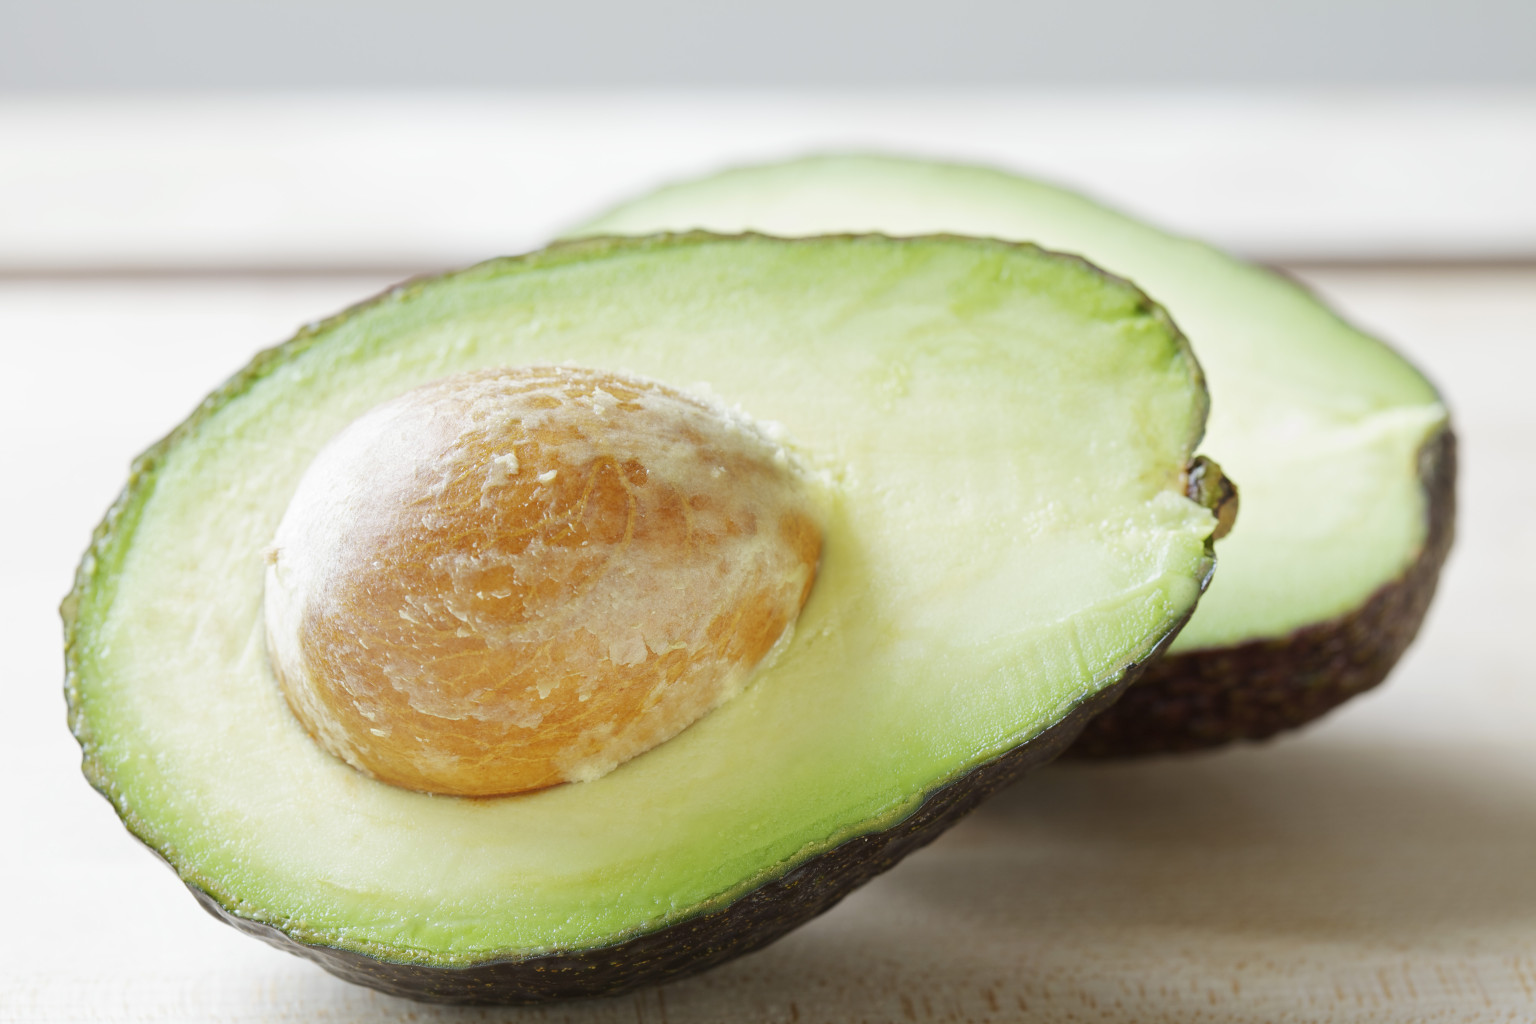 6 Things You Probably Didn't Know About Avocados